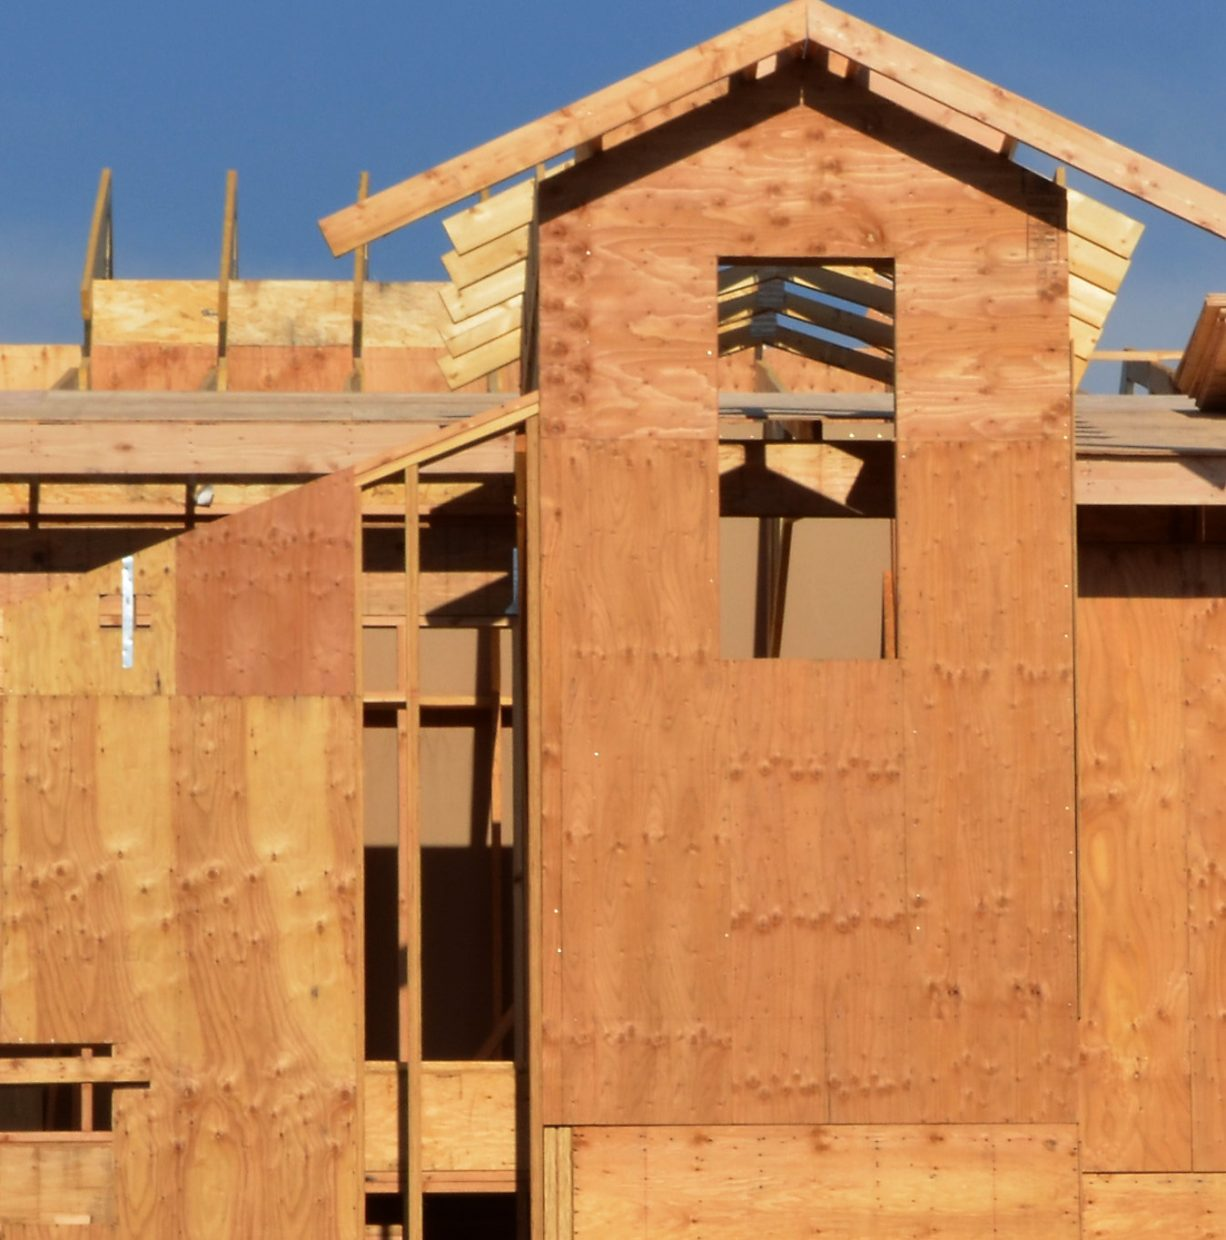 The Yampa Valley Housing Authority meets Jan. 12 to consider adopting the findings of the citizens housing steering committee and begin forming a funding committee of its own to access outside funding sources to build the authority's next projects.